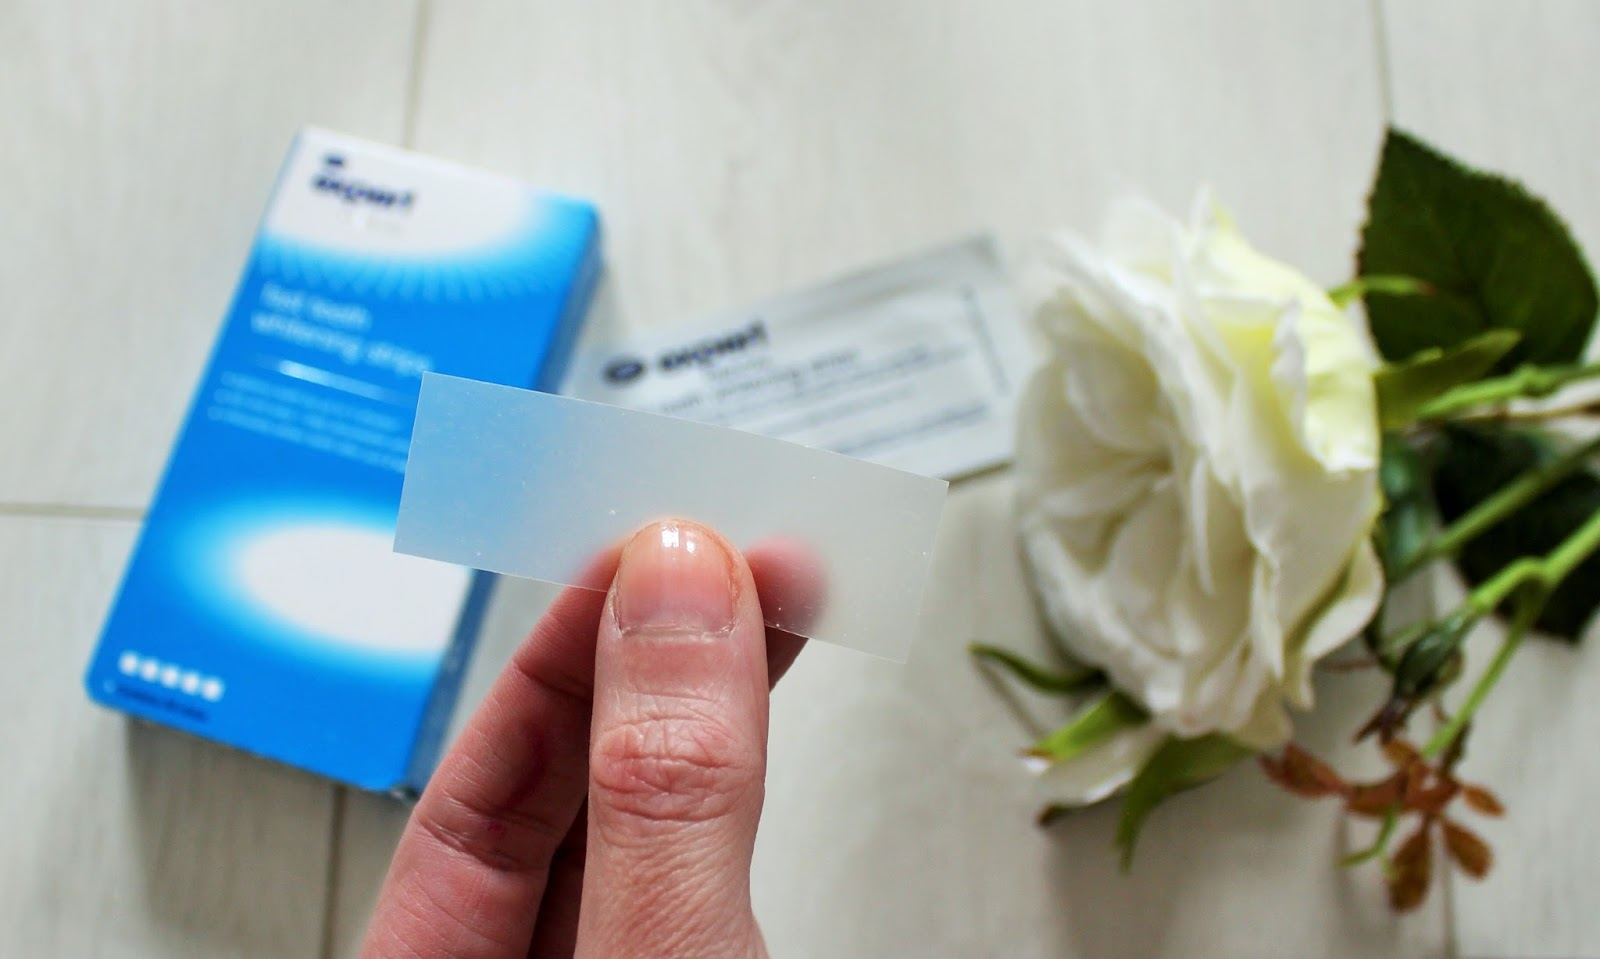 Budget Friendly Tips For A Whiter Smile - 4 - Boots Expert Teeth Whitening Strips